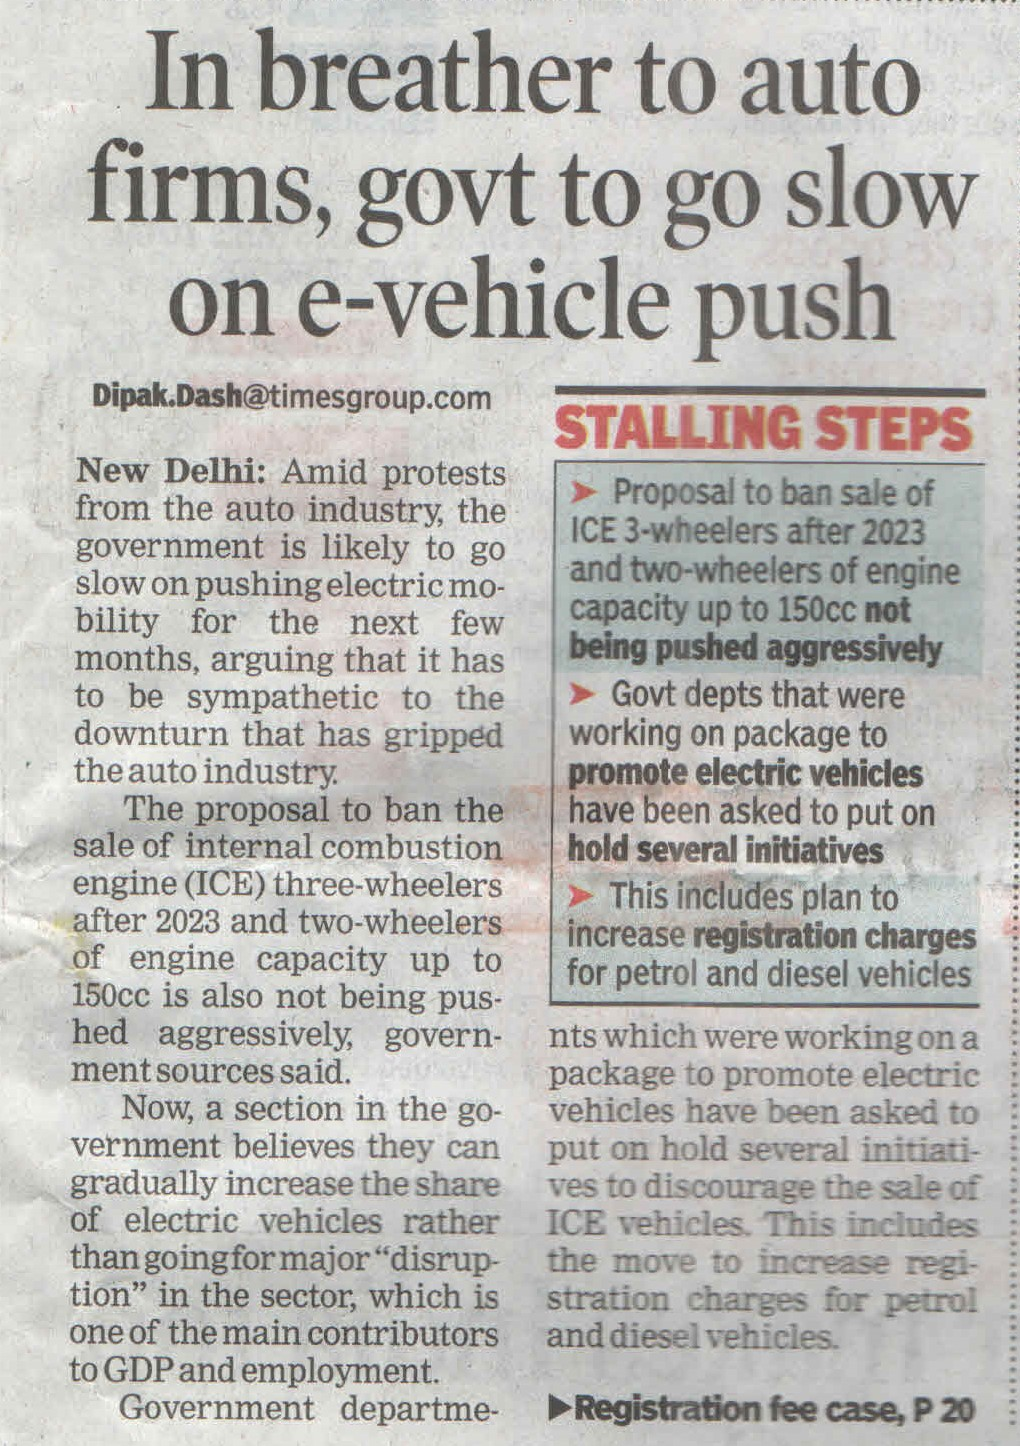 In breather to auto firms, govt to go slow on e-vehicle push